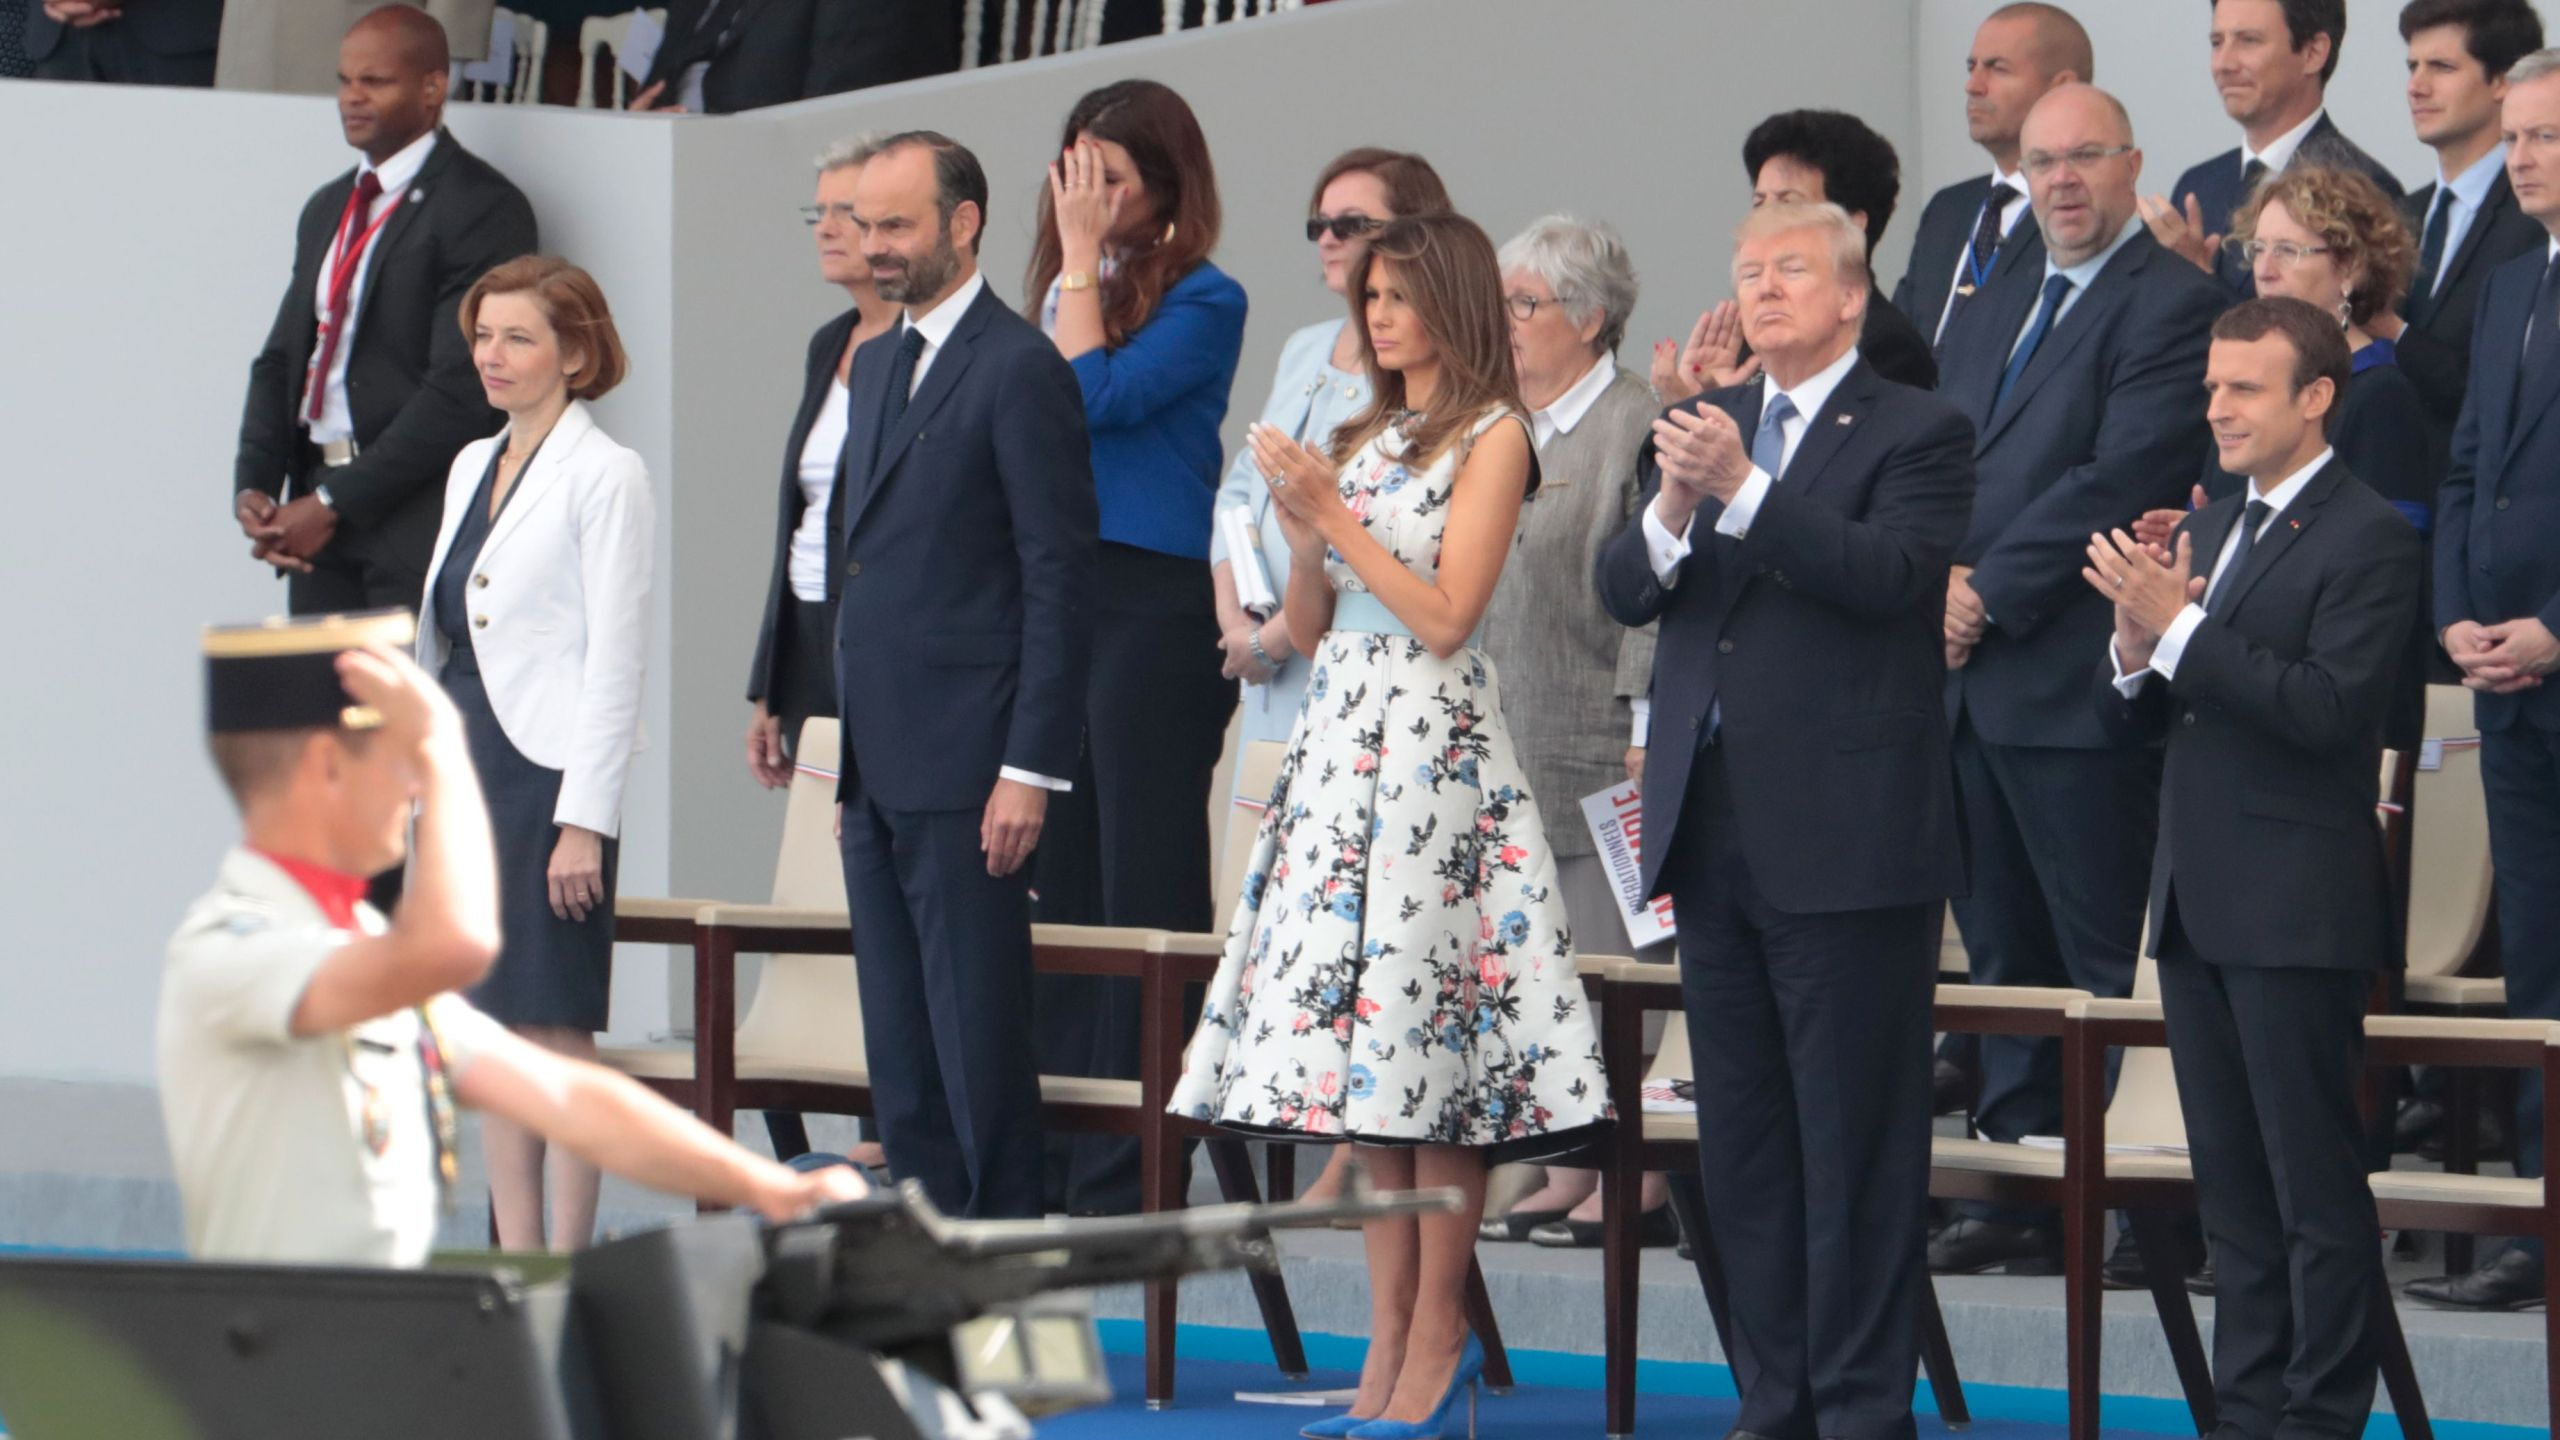 From right: French President Emmanuel Macron, President Donald Trump, First lady Melania Trump, French Prime Minister Edouard Philippe and French Defense Minister Florence Parly attend the annual Bastille Day military parade on the Champs-Elysees avenue in Paris, July 14, 2017. (Credit: Joel Saget / AFP / Getty Images)